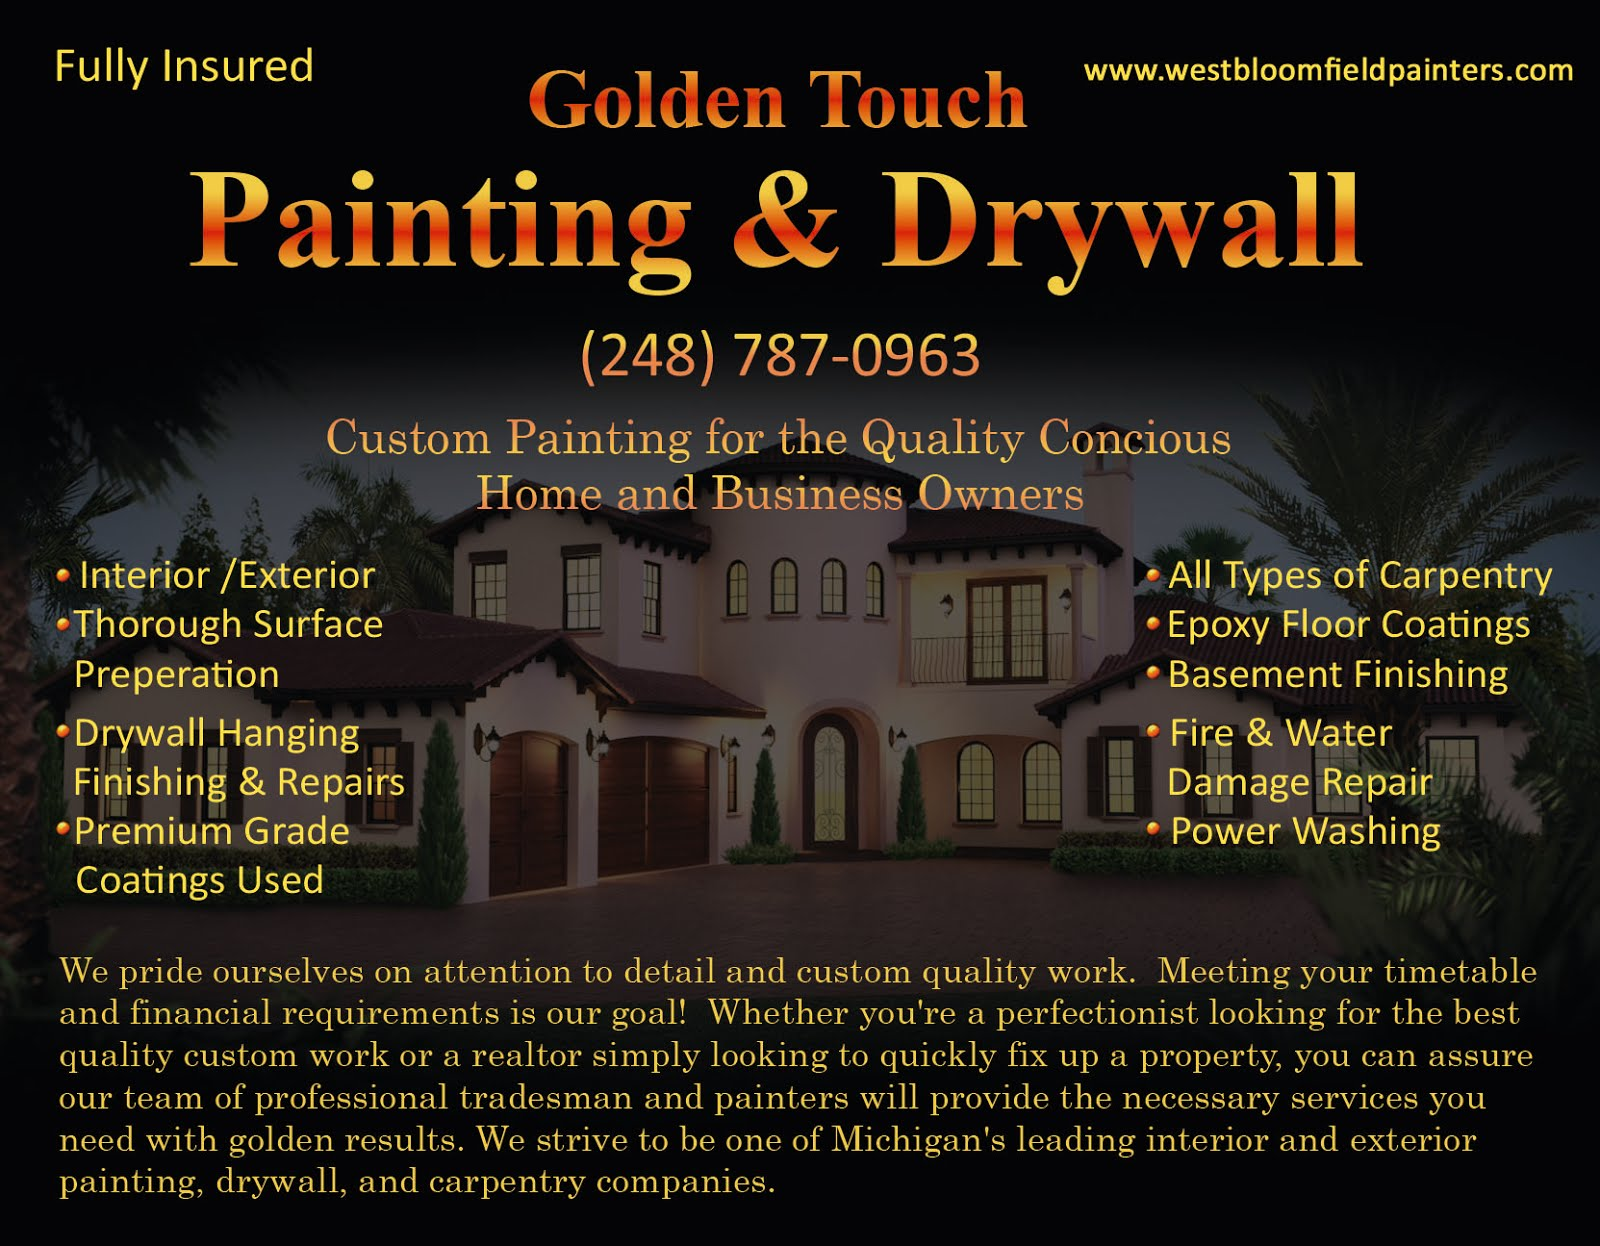 West Bloomfield Painters